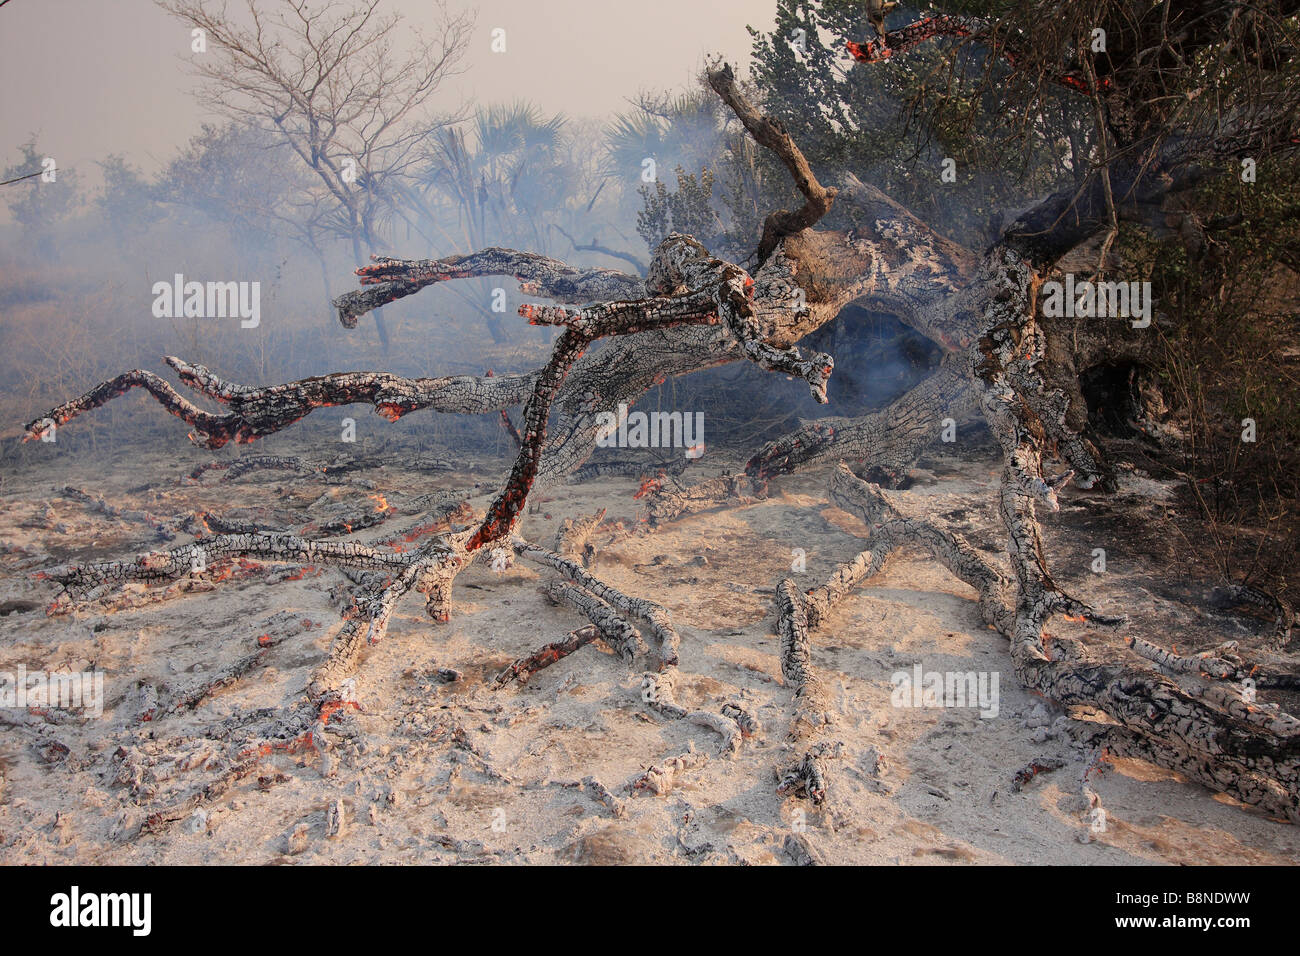 Burnt tree and ash after veld fires in Tembe Elephant Park - Stock Image